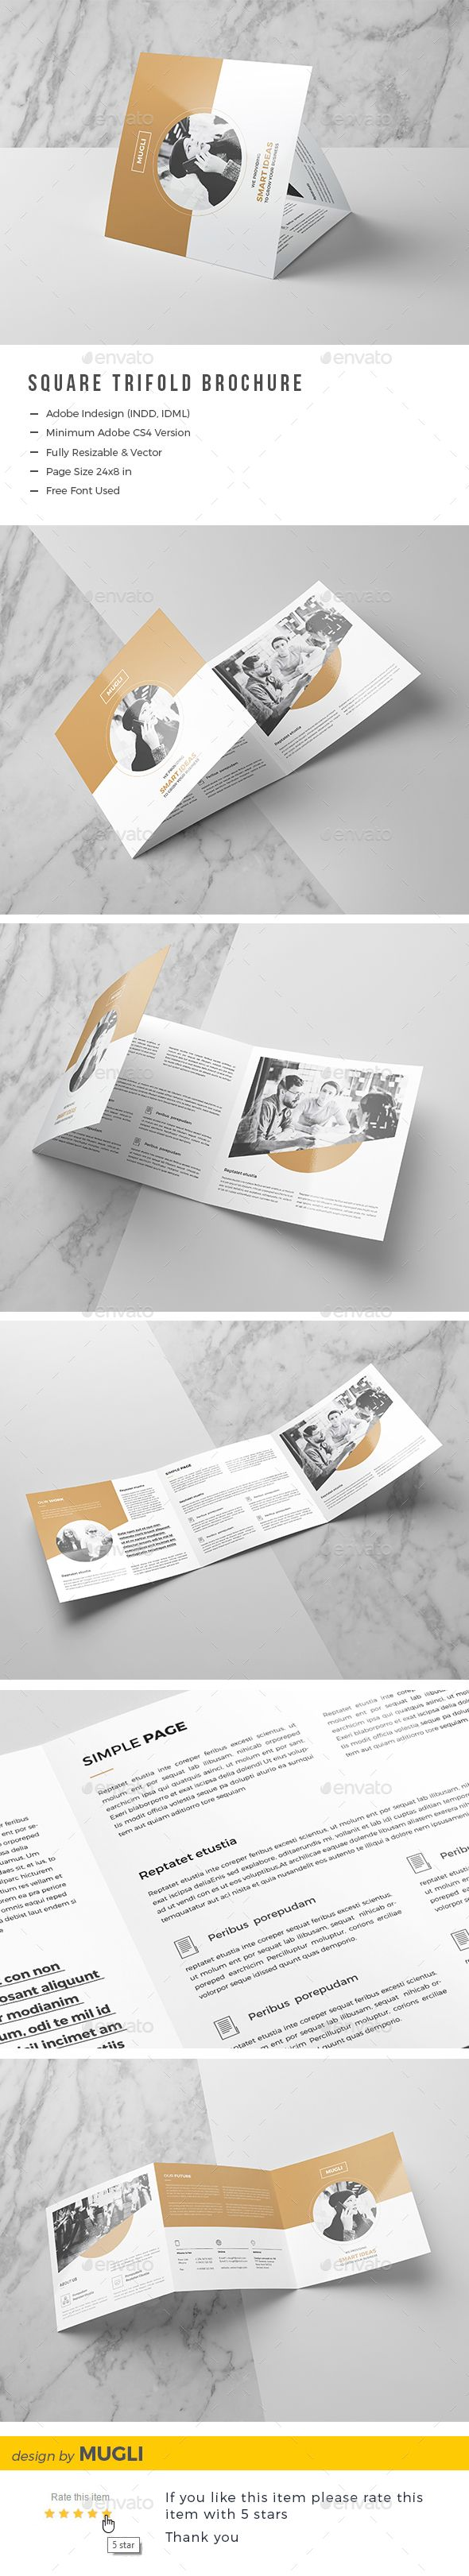 Wonderful 1 Page Resumes Huge 1 Week Calendar Template Clean 1099 Agreement Template 11 Vuze Search Templates Old 15 Year Old Resume Example Black2 Week Notice Templates 25  Best Ideas About Brochure Layout On Pinterest | Portfolio ..